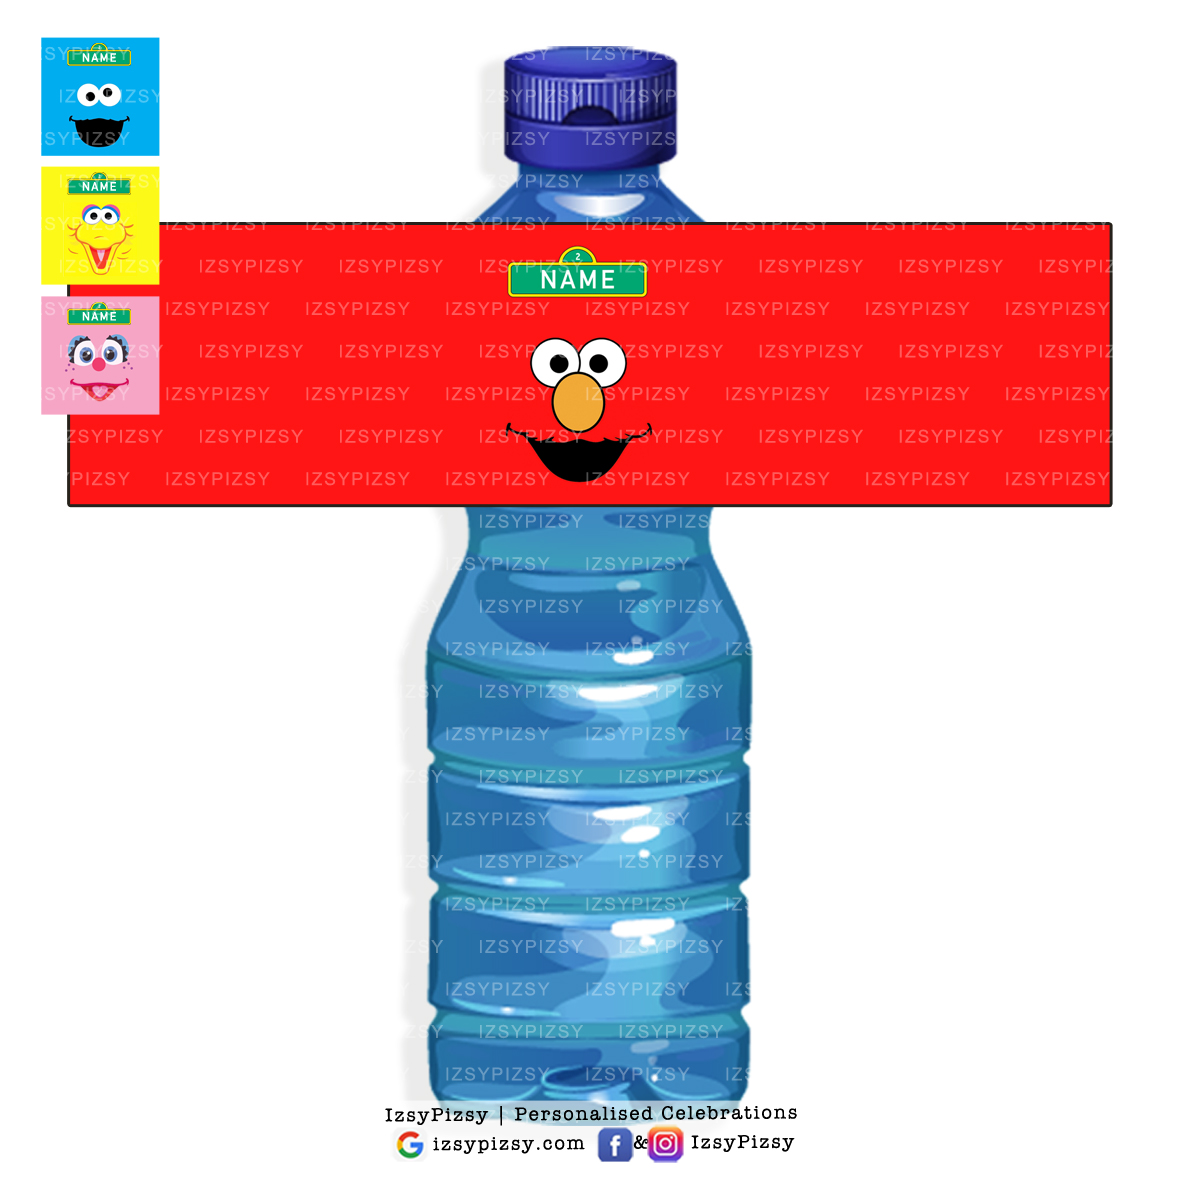 Personalized Sesame Street Abby Cadabby Water Bottle